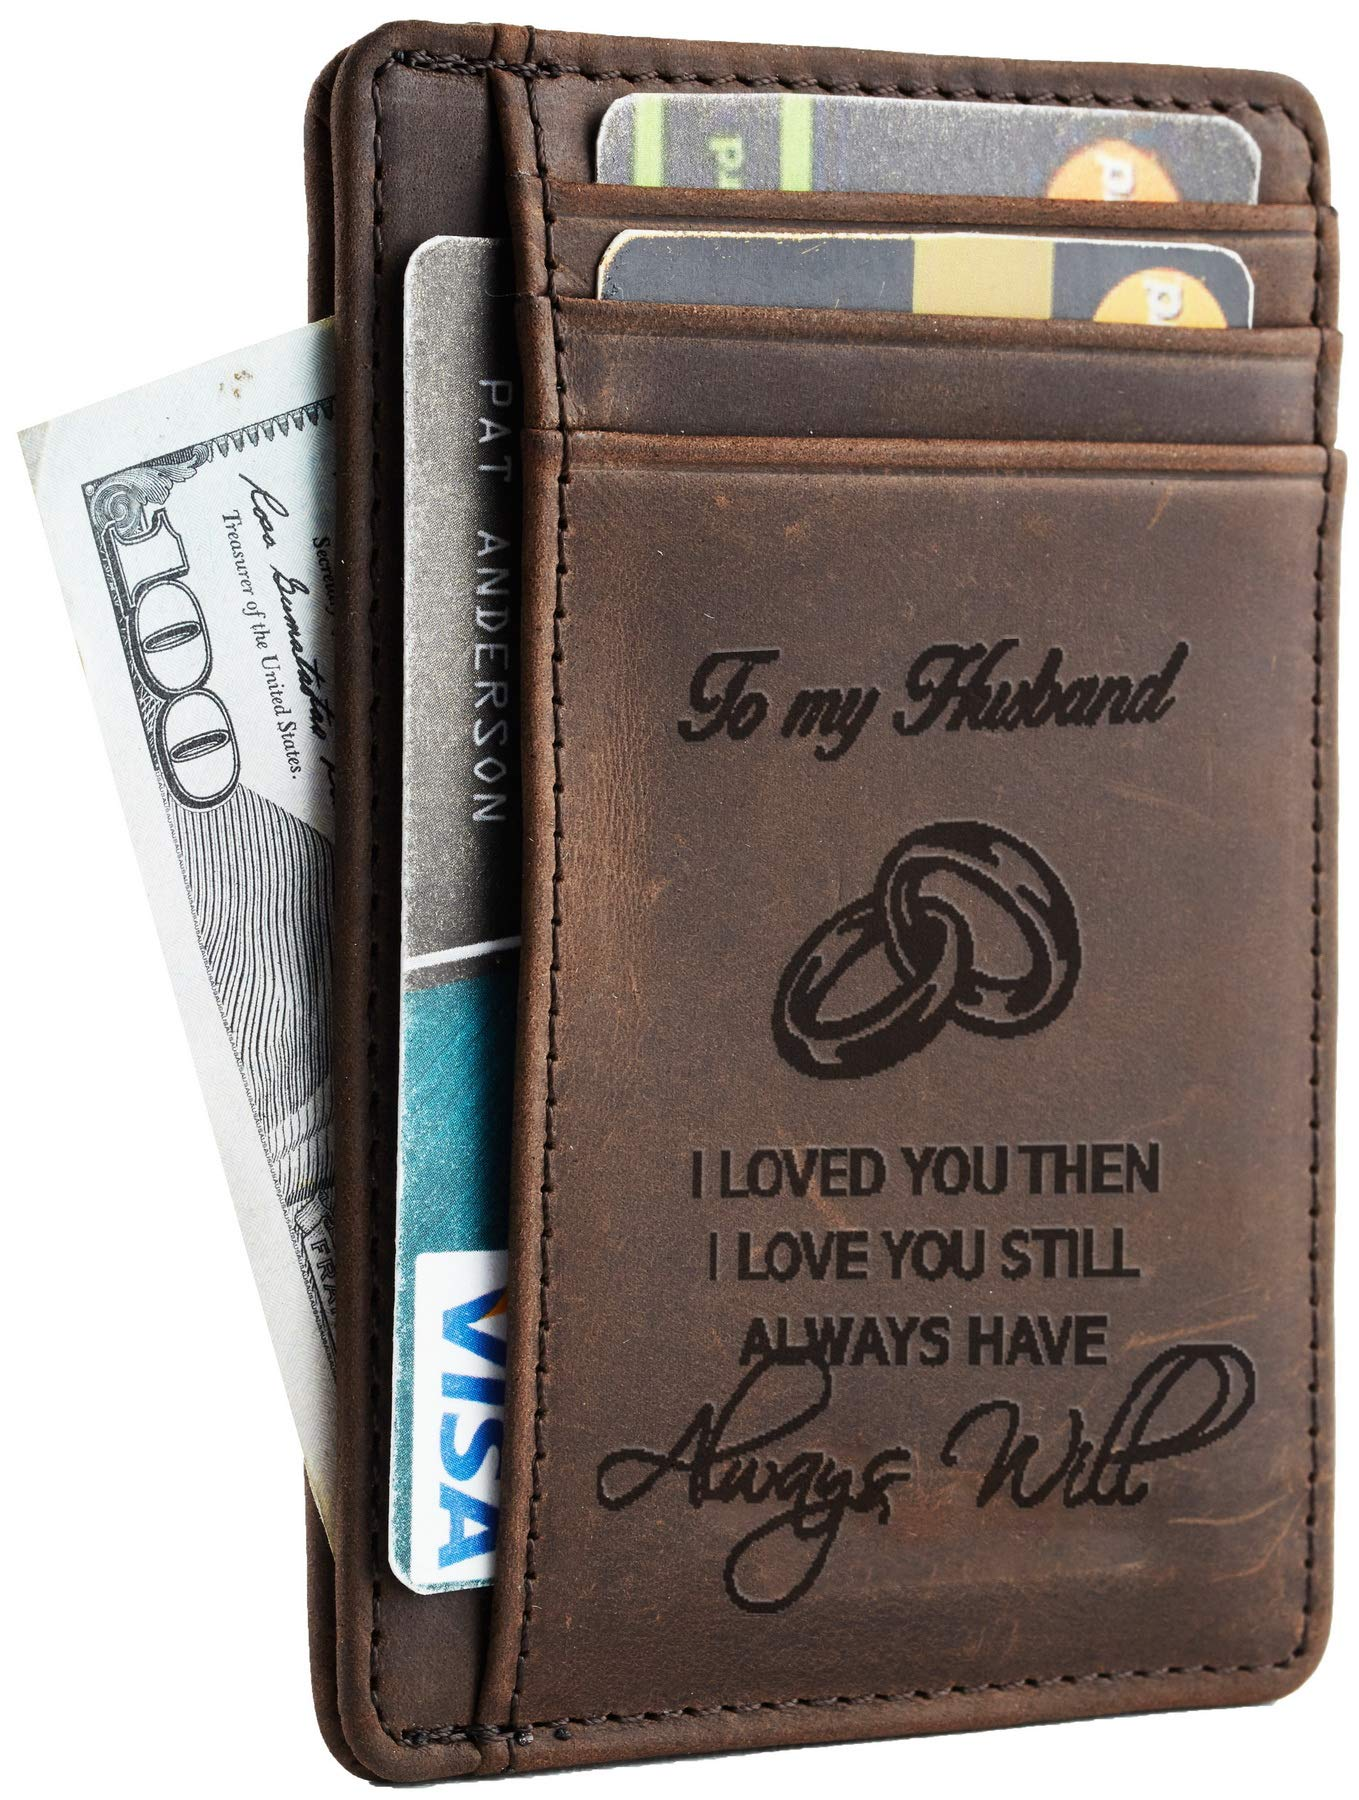 NapaWalli Wife To Husband Father Mother to Son Gift Best Anniversary Christmas Birthday Gifts Slim Wallet  sc 1 st  Amazon.com & Anniversary Gift For Him: Amazon.com